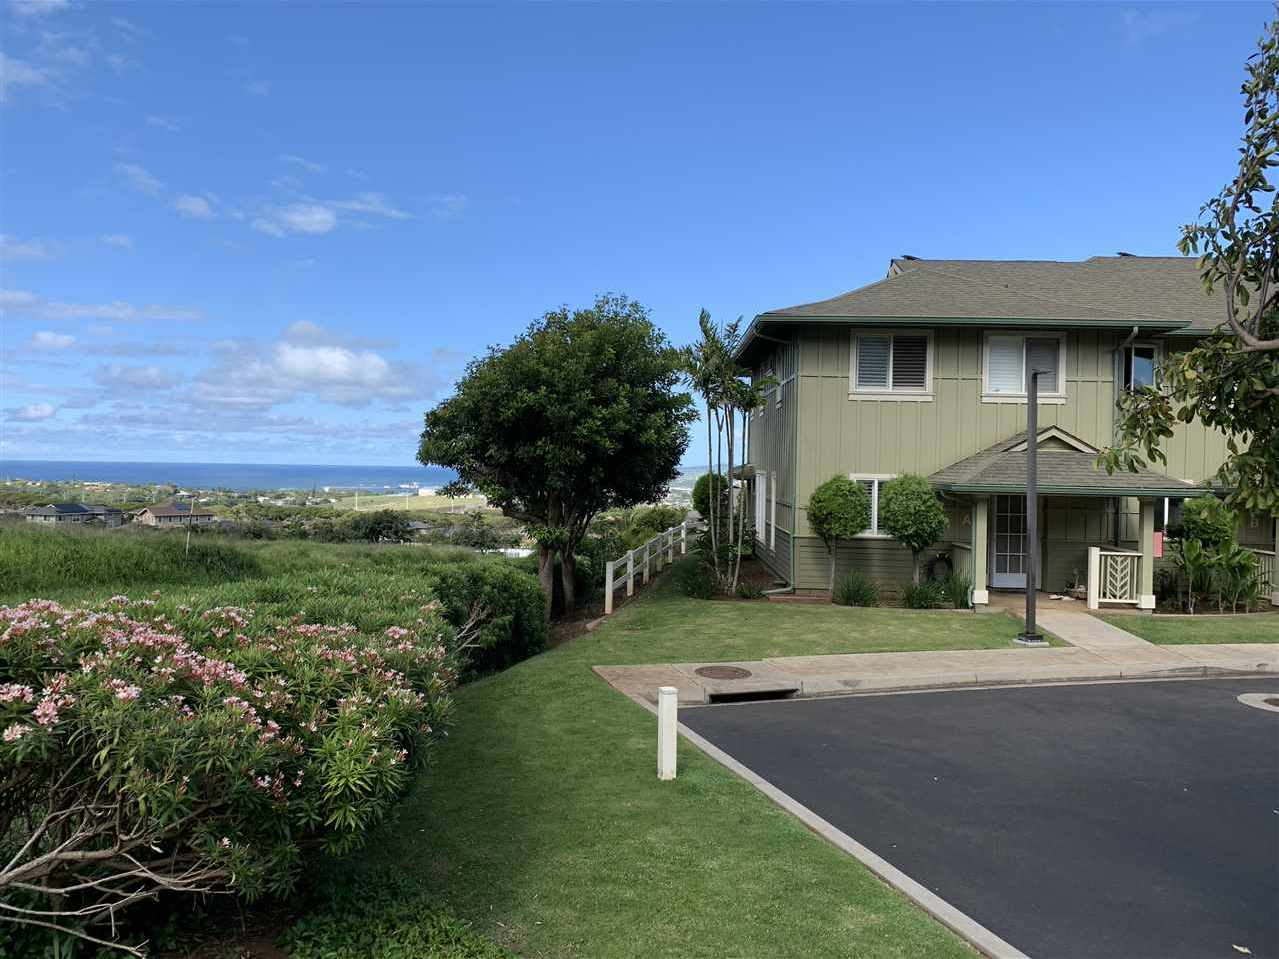 $560,000 - 3Br/2Ba -  for Sale in Iliahi At Kehalani, Wailuku